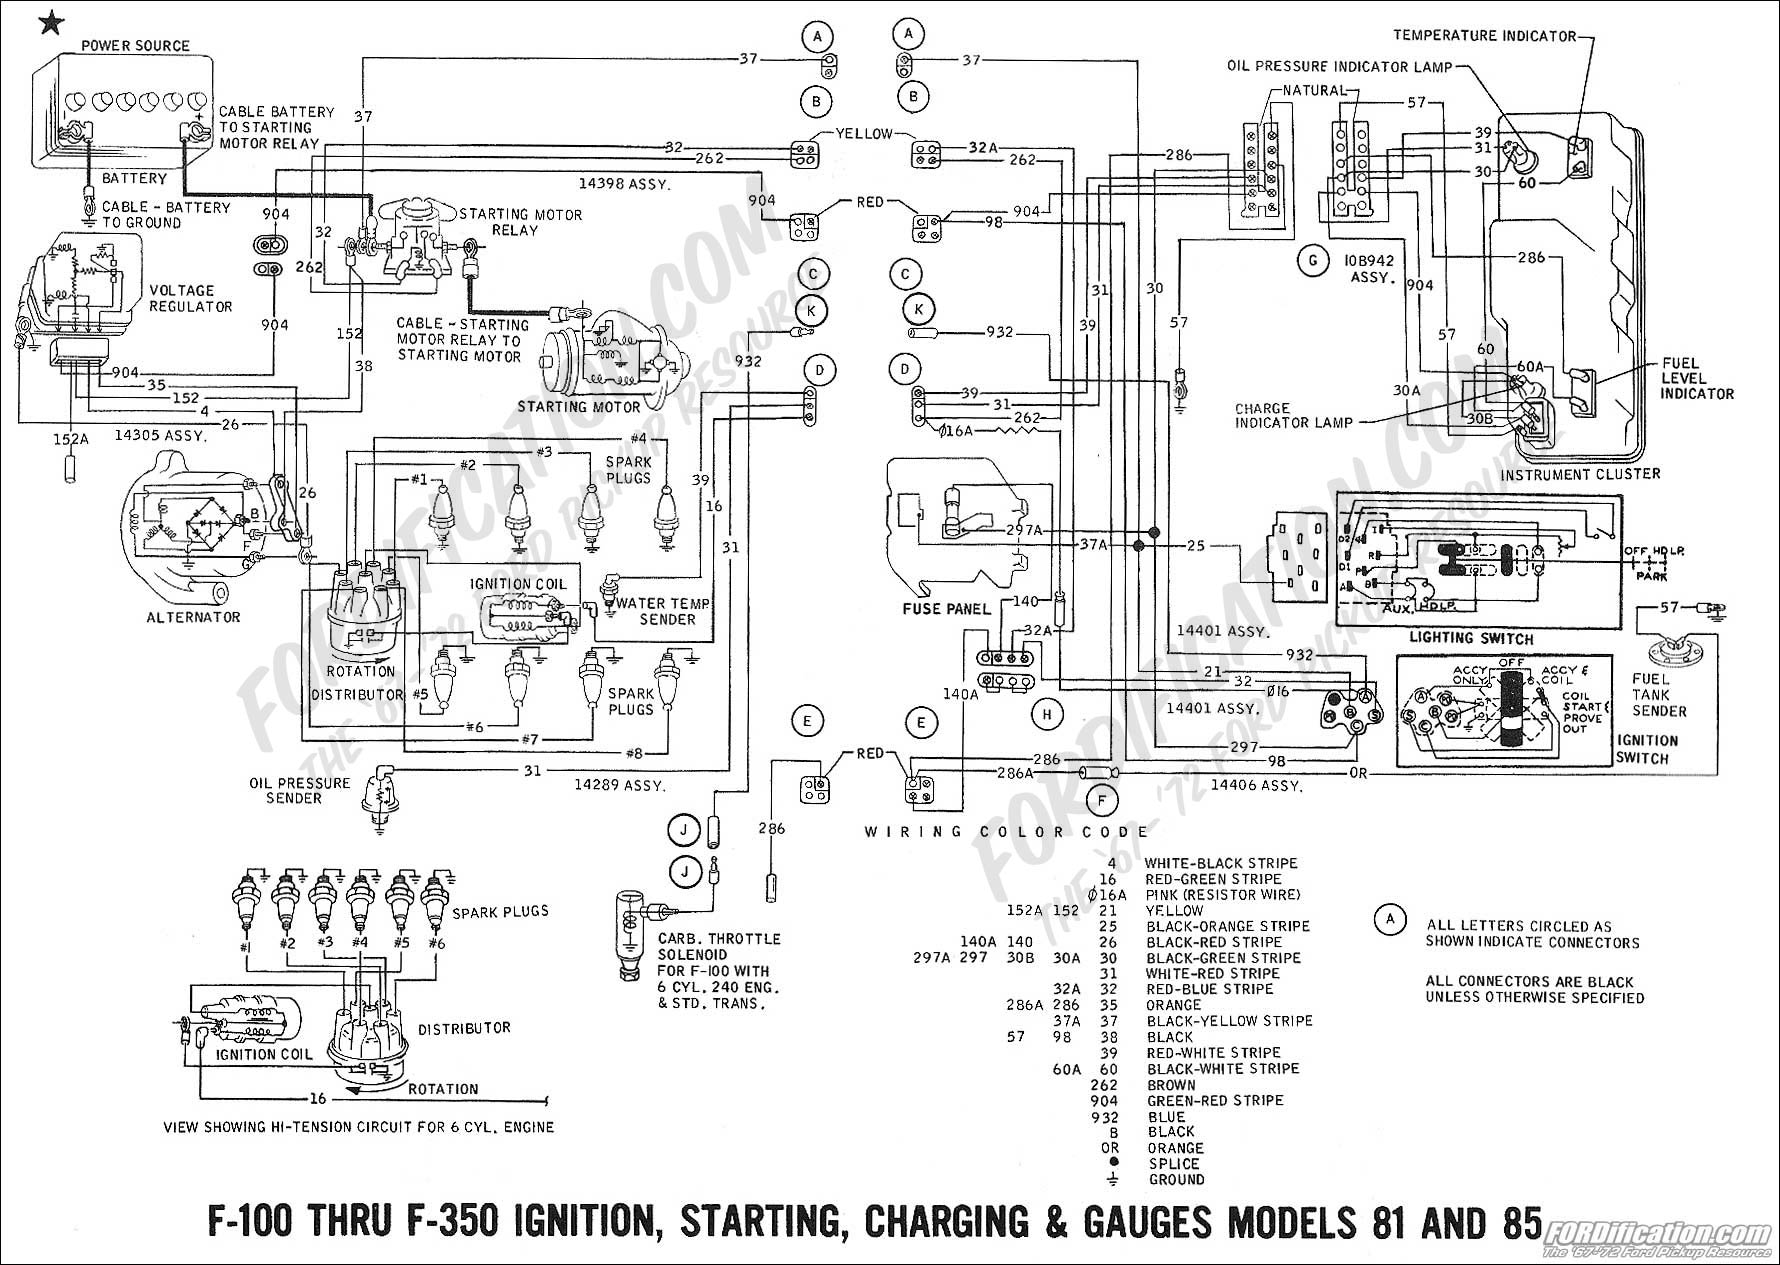 1985 ford truck wiring diagram wiring library85 ford f250 wiring diagram wiring library 1980 ford truck lighting diagram 1985 ford truck wiring diagram